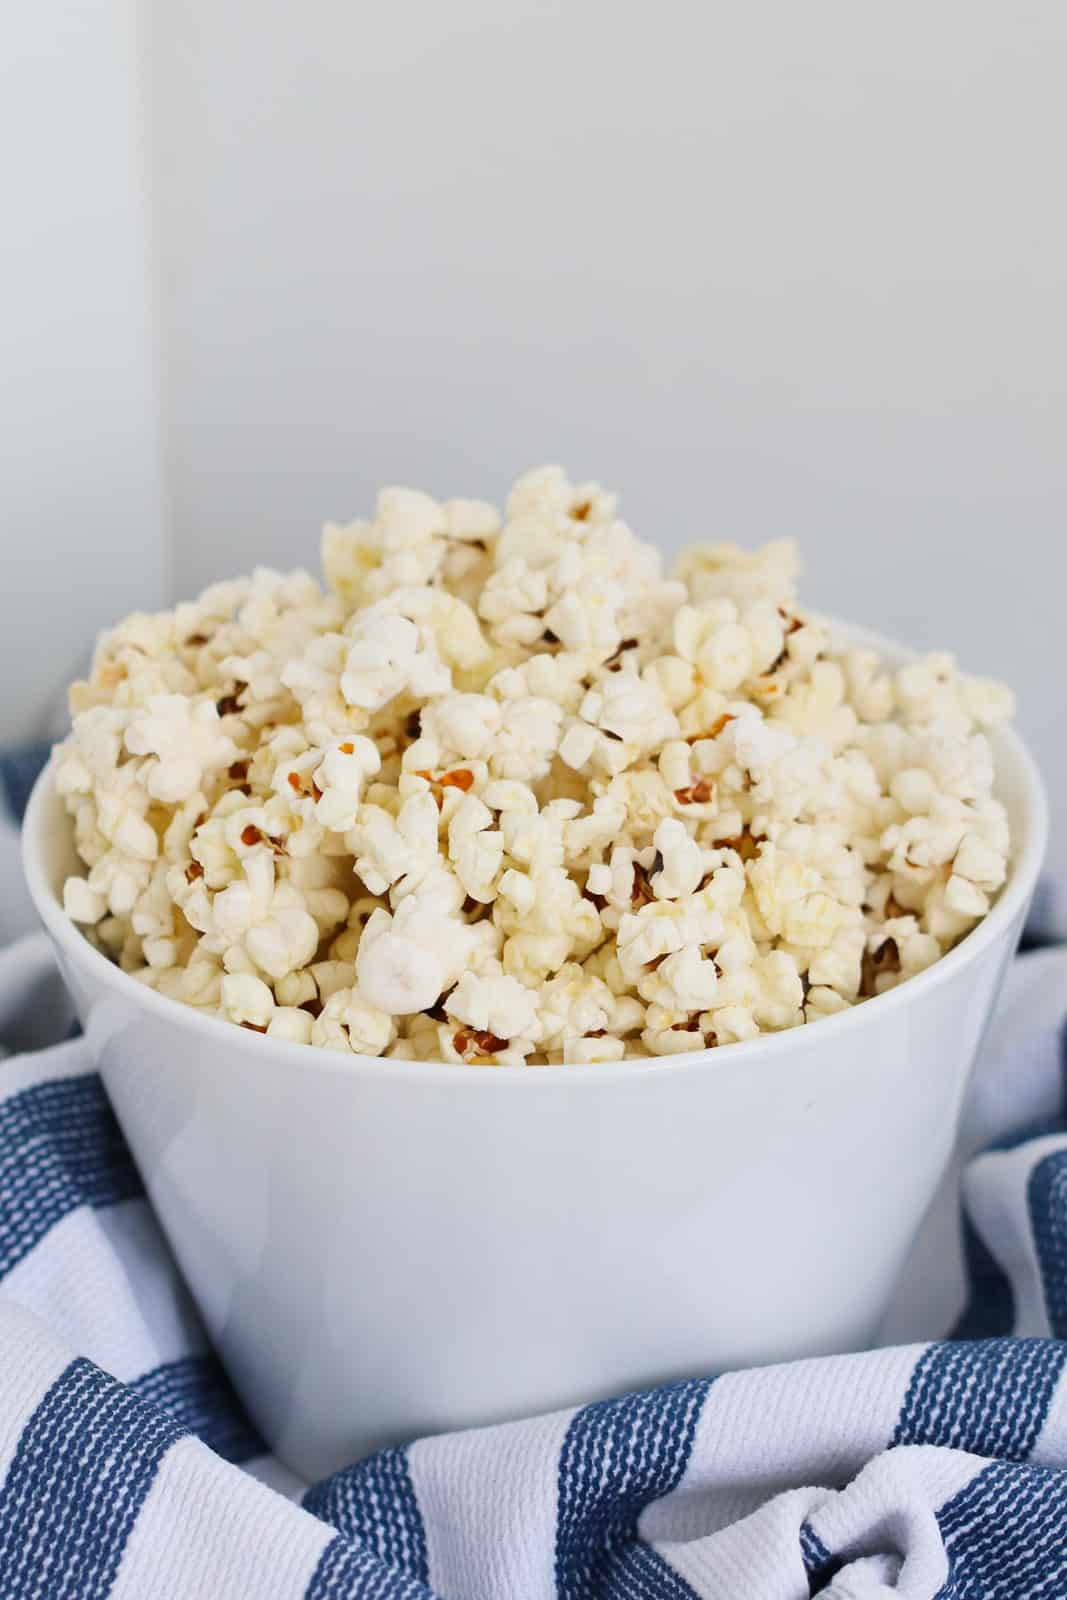 A white bowl of popcorn on a blue and white tea towel